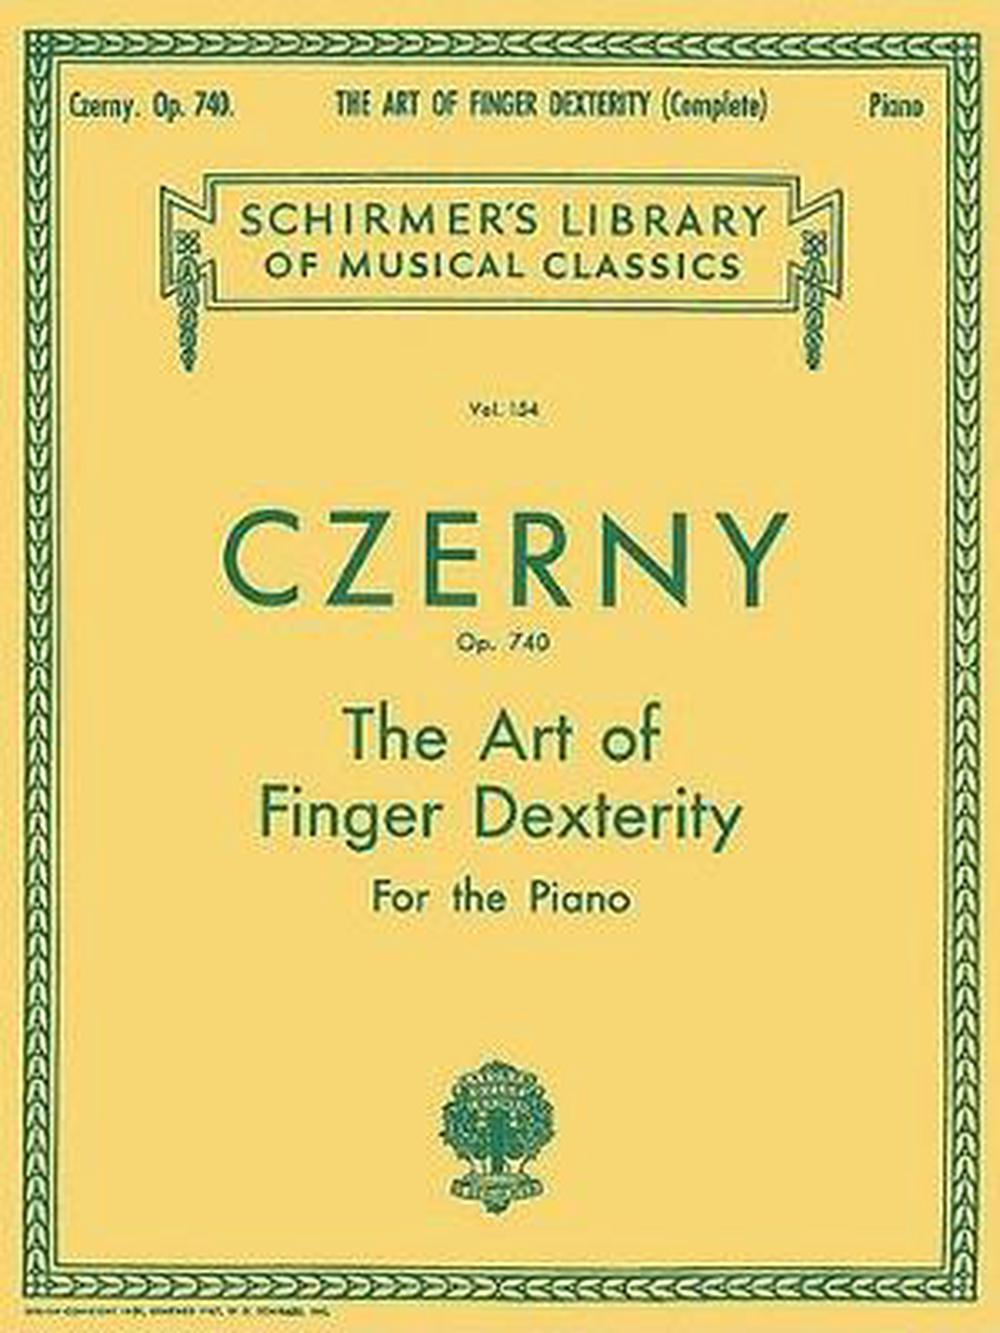 Art of Finger Dexterity, Op. 740 (Complete): Piano Technique